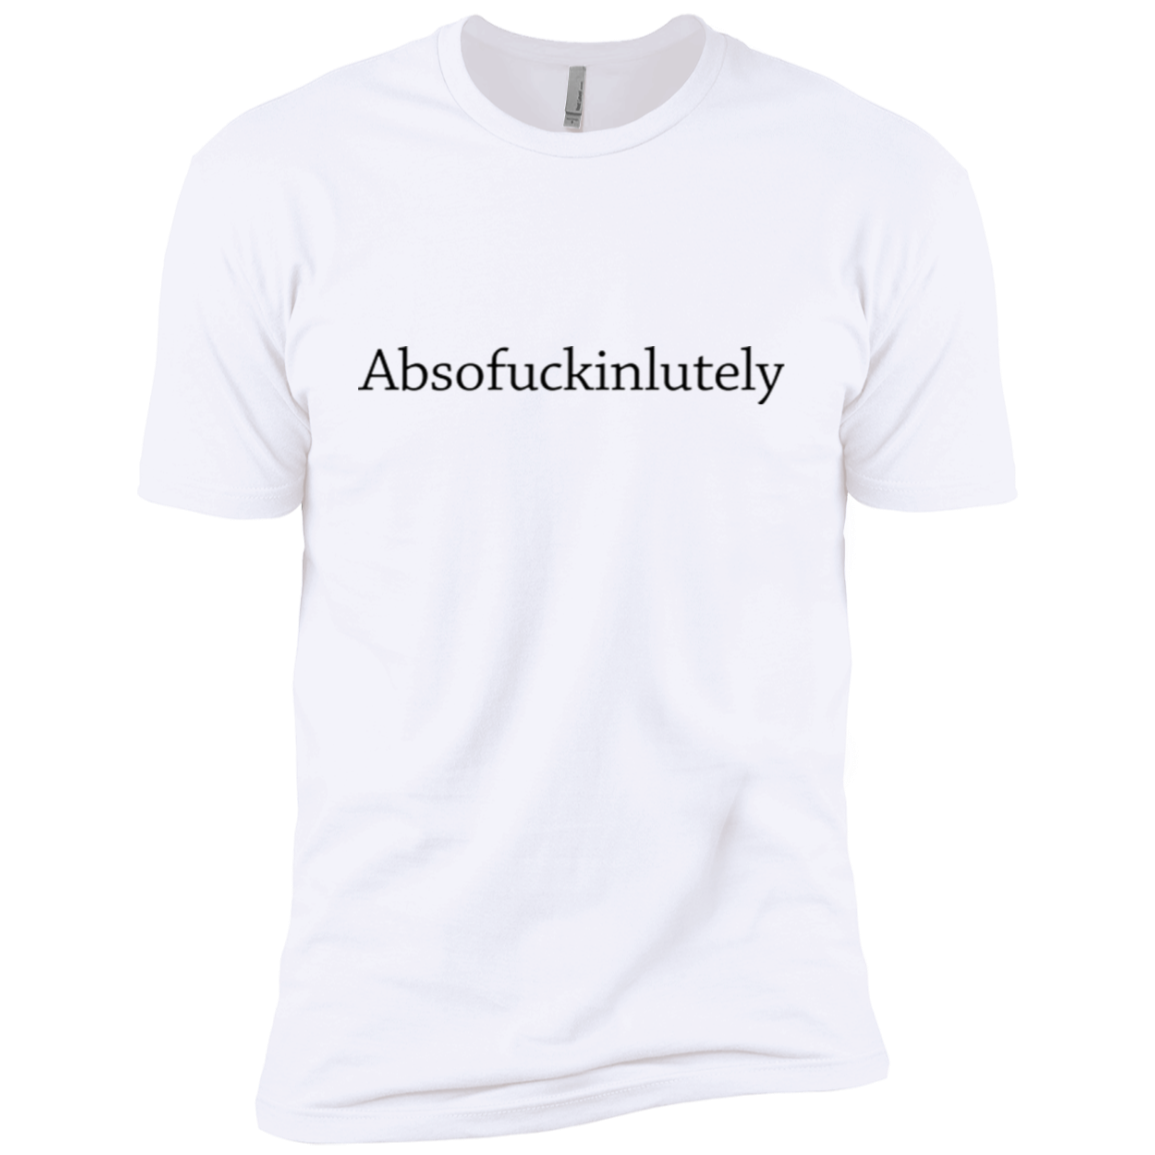 Absofuckinlutely Men's Classic Tee - Trendy Tees